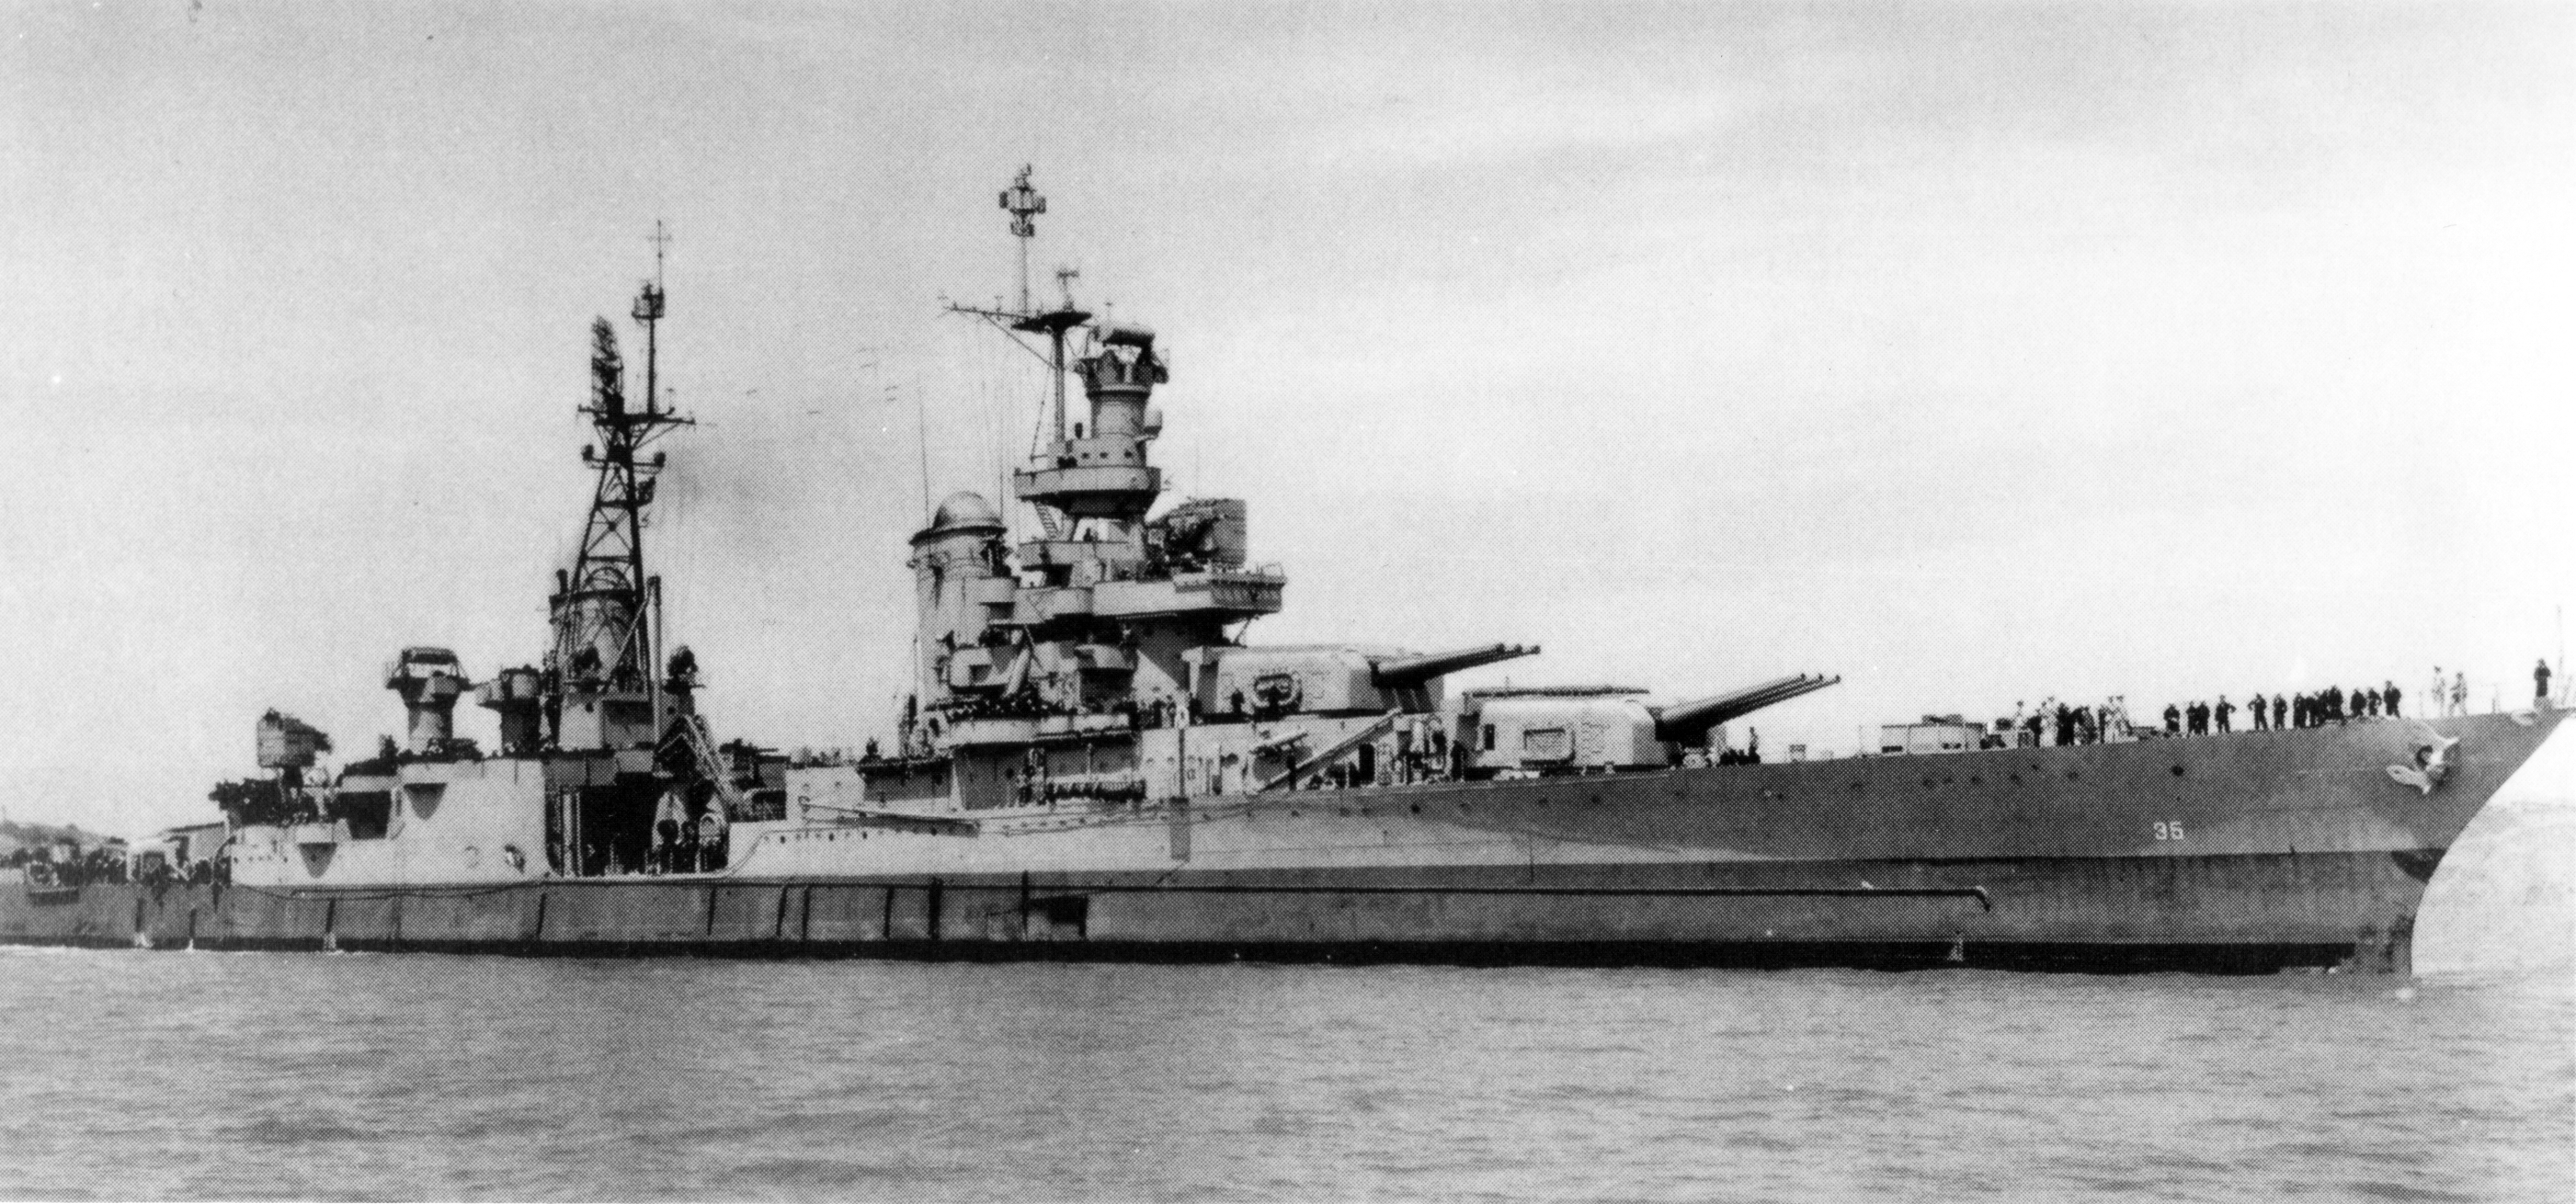 An Interview with Edgar Harrell, a Survivor of the USS Indianapolis